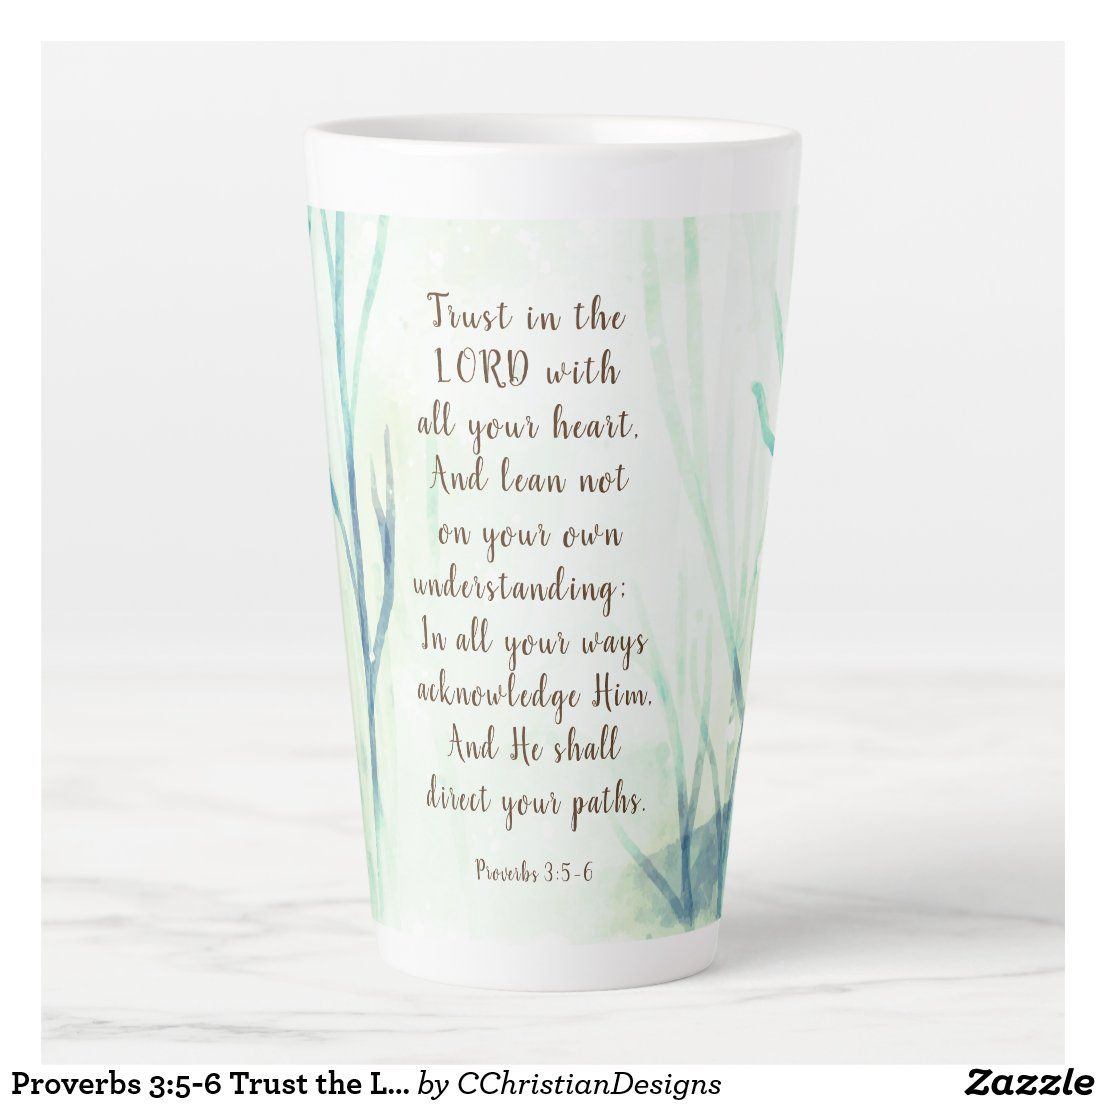 Proverbs 3 5 6 Trust The Lord With All Your Heart Latte Mug Zazzle Com Latte Mugs Proverbs Inspirational Gifts